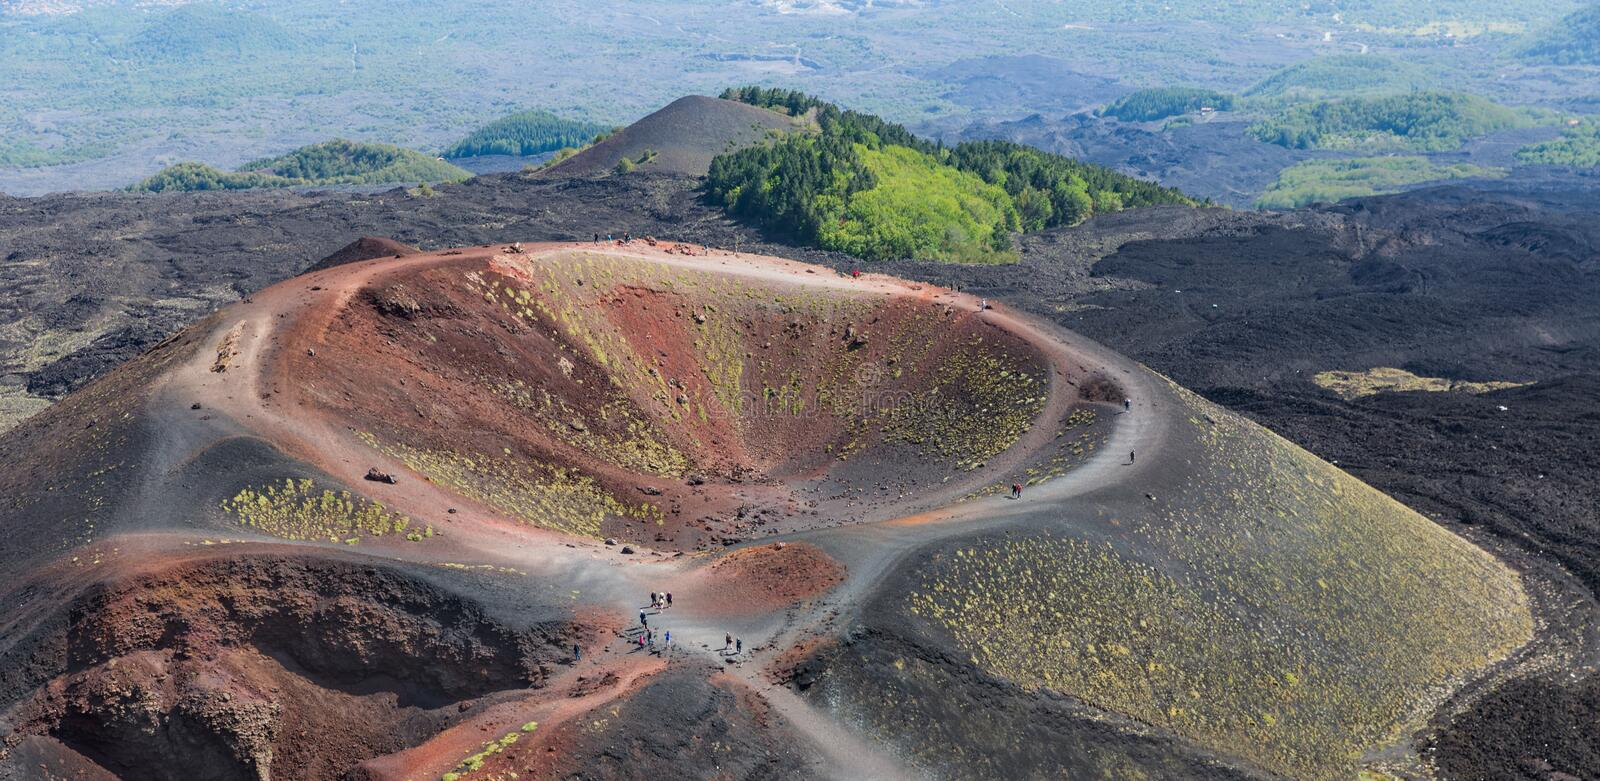 Silvestri crater at the slopes of Mount Etna at the island Sicily, Italy stock images